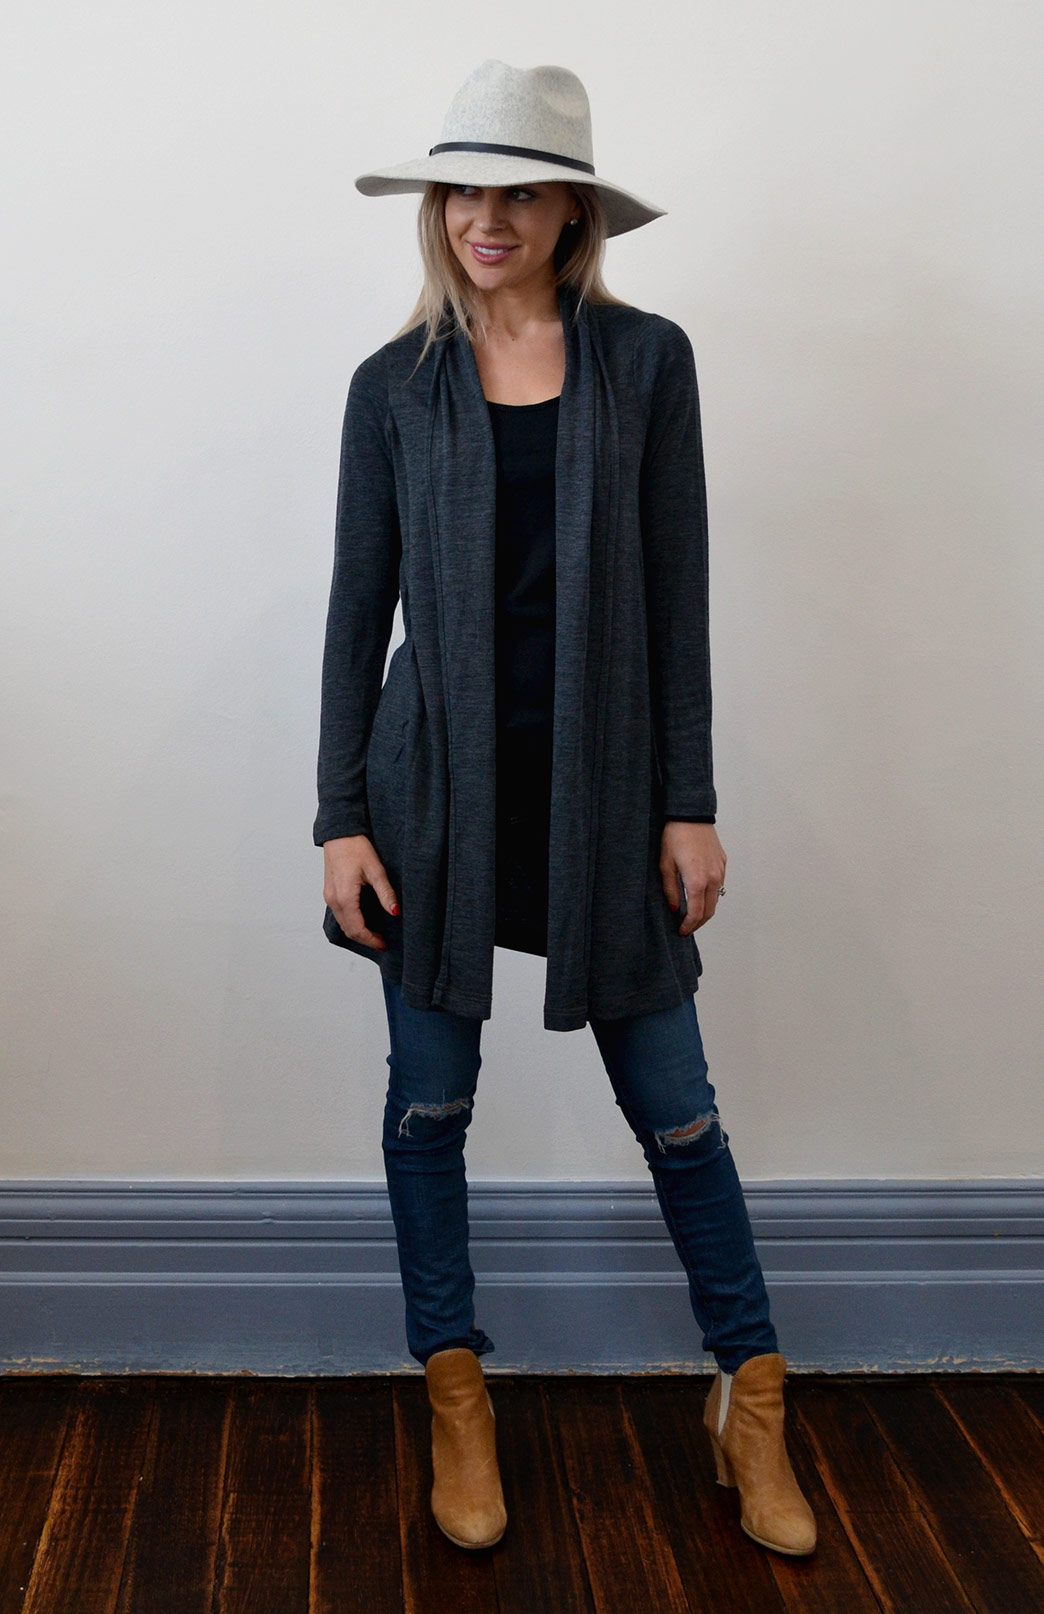 Drape Cardigan - Lightweight - Women's Charcoal Grey Wool Drape Cardigan with no buttons or fastenings - Smitten Merino Tasmania Australia